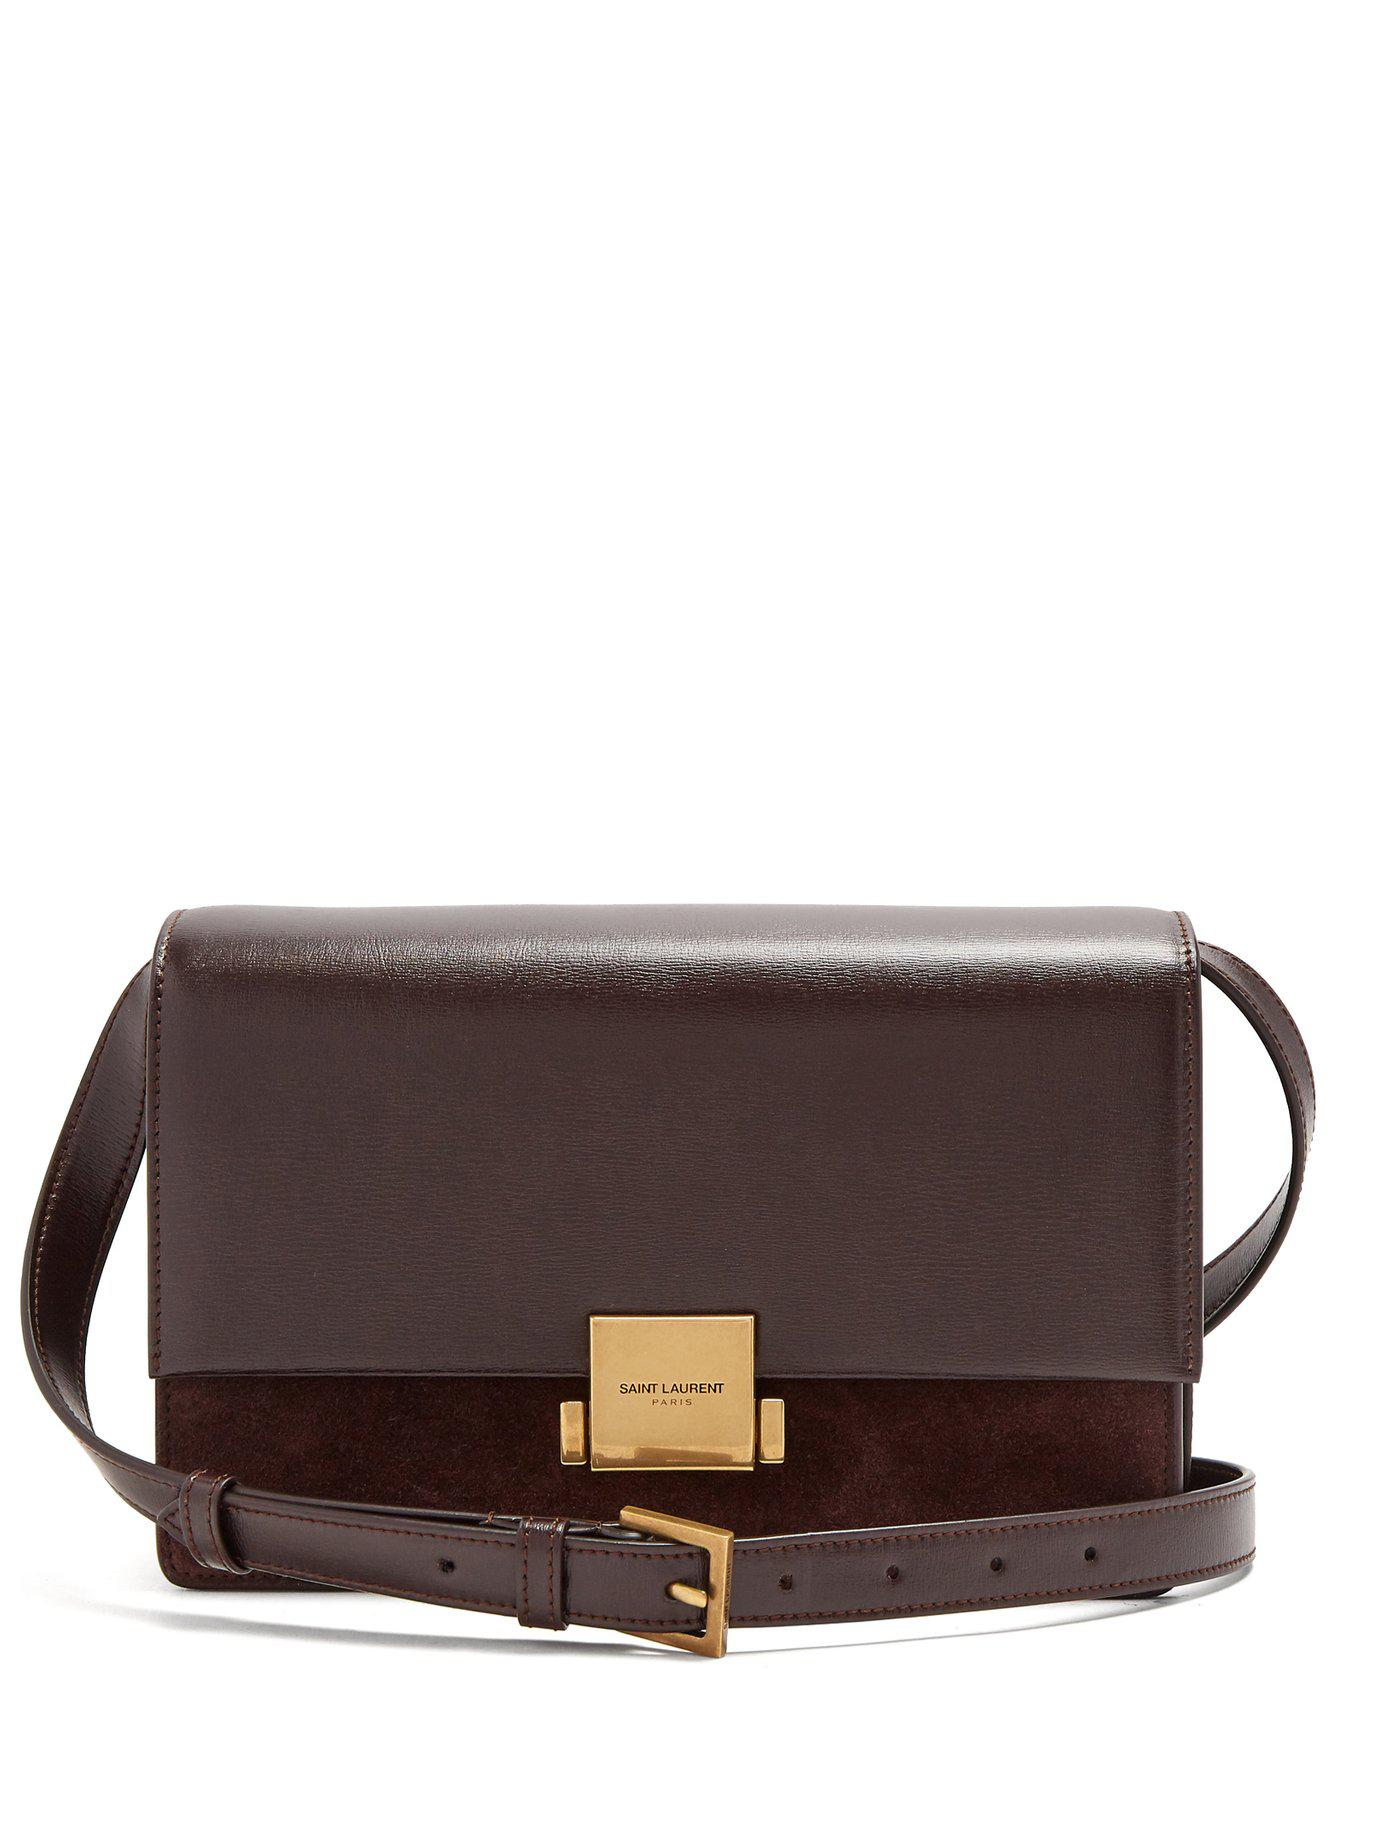 1879650a8934 Lyst - Saint Laurent Bellechasse Medium Leather And Suede Bag in Brown